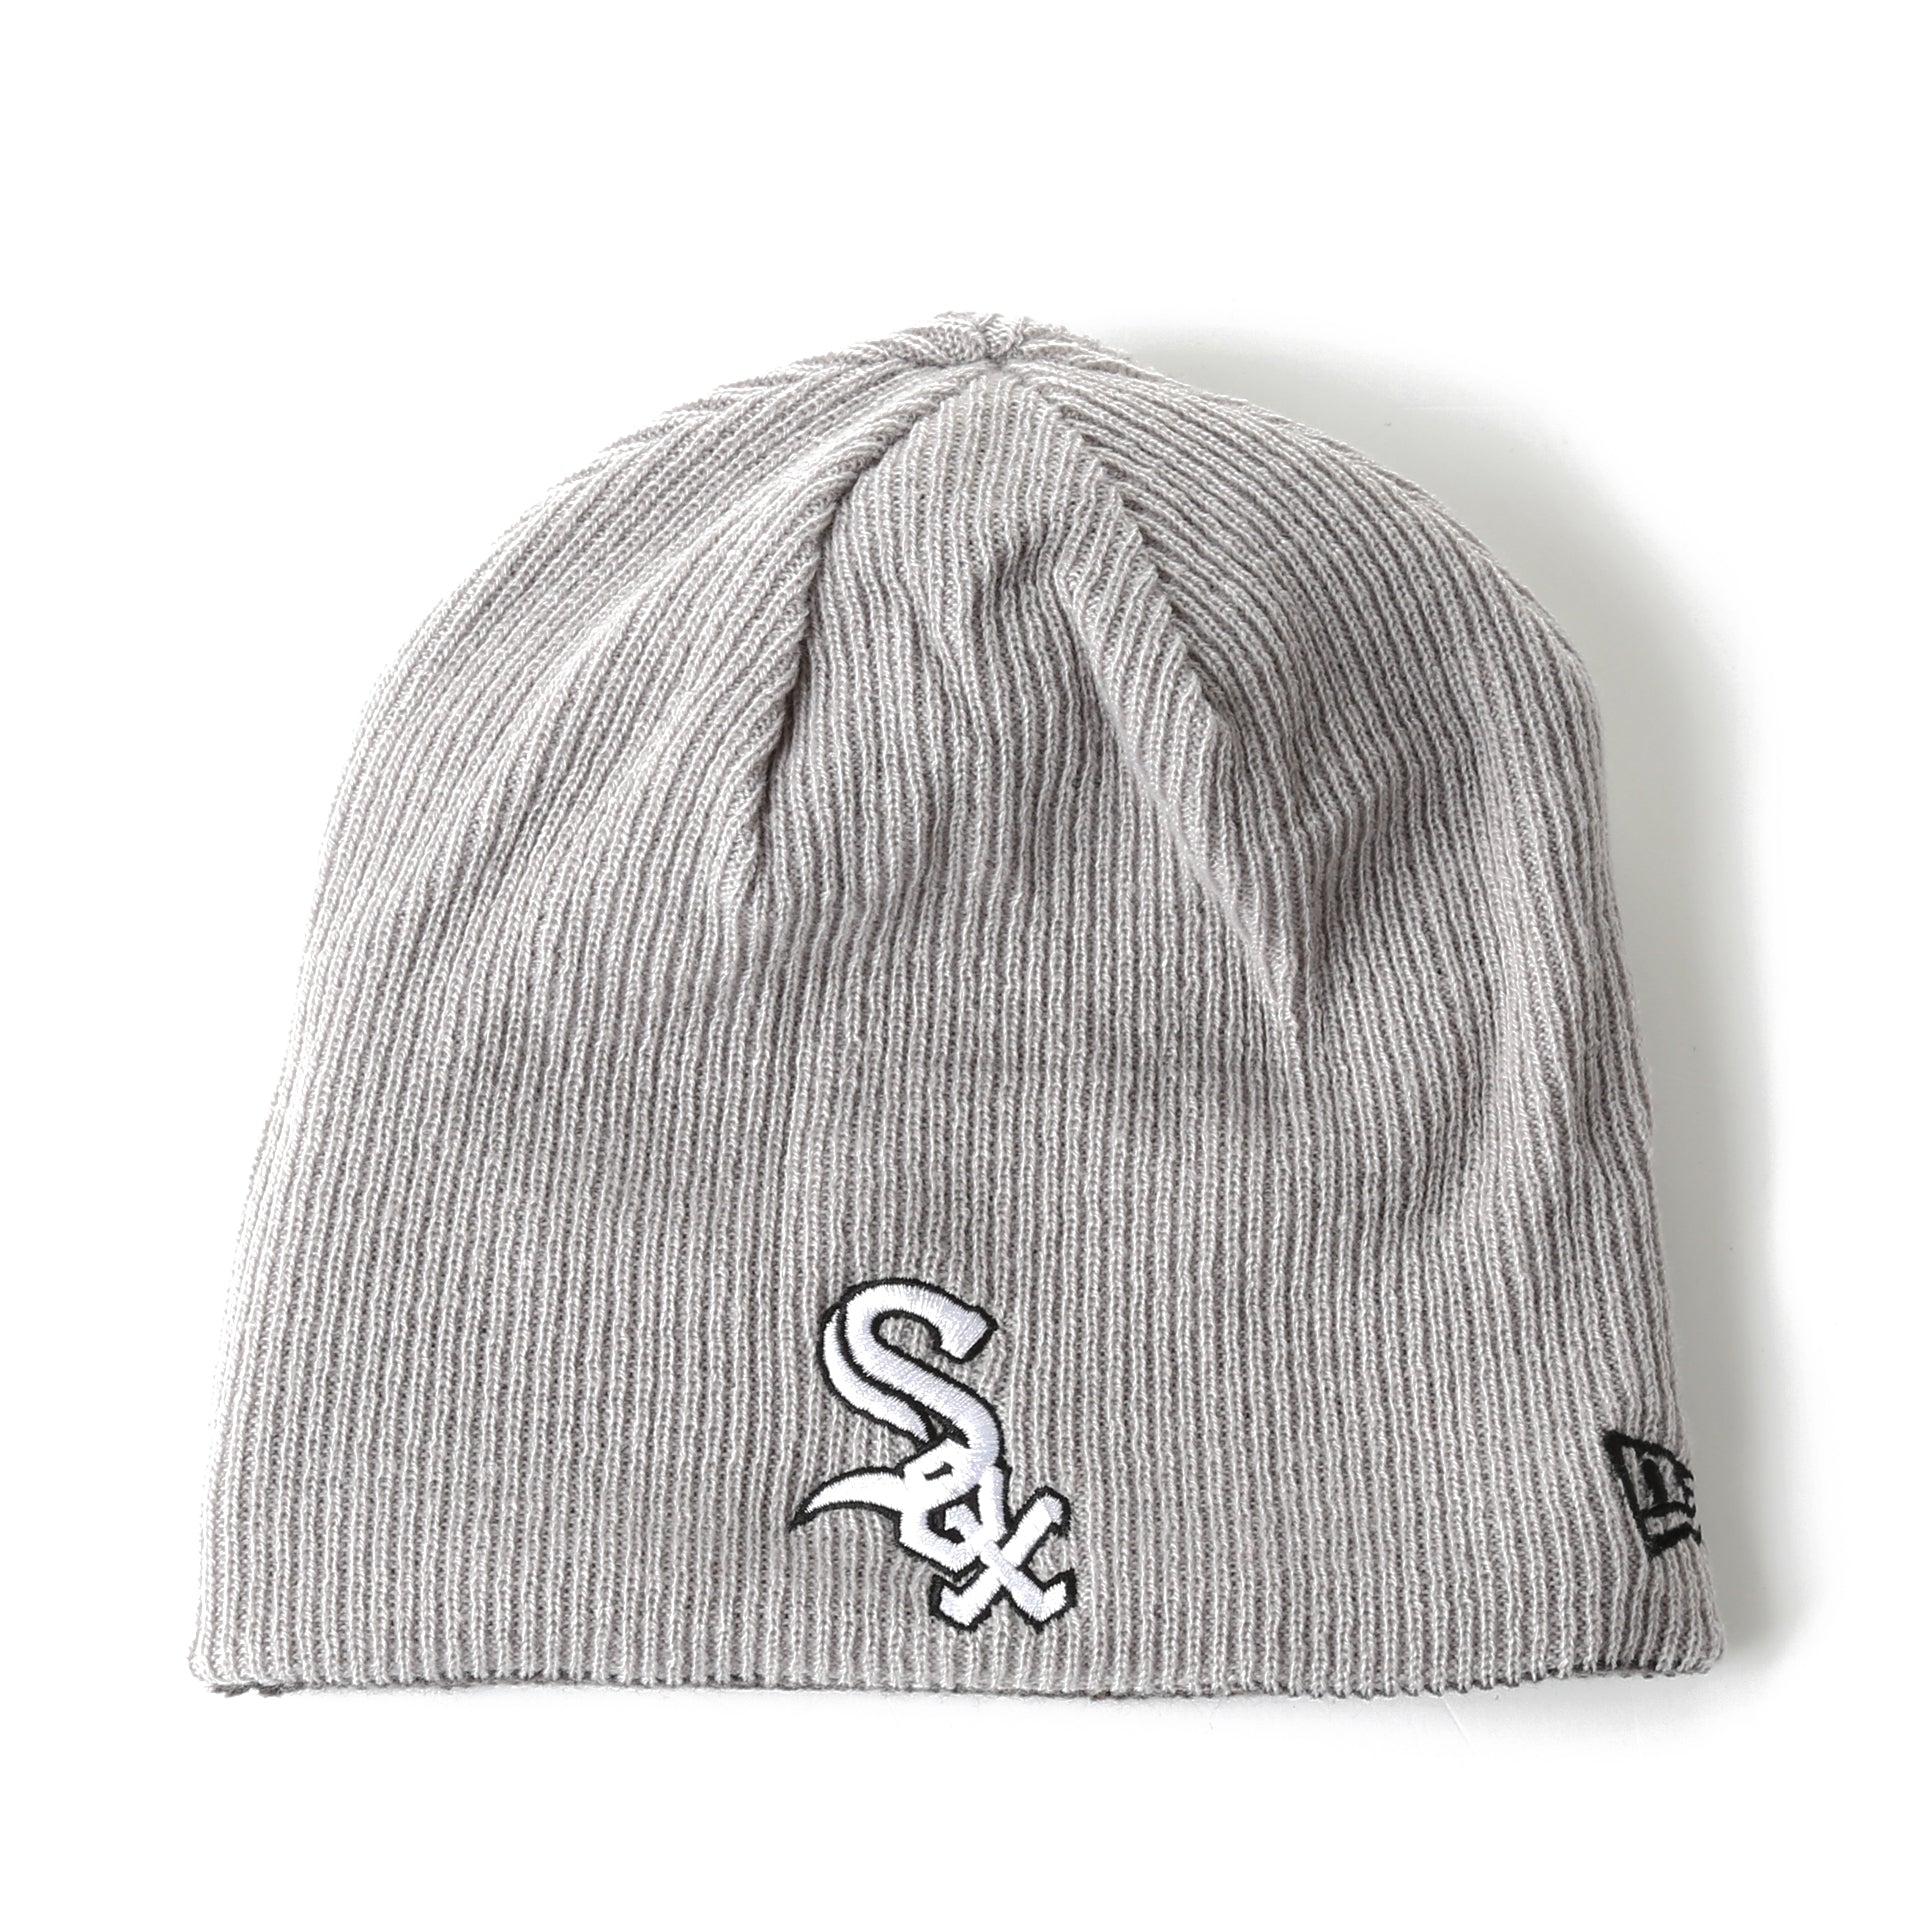 best service 3d921 d5b1c ... wholesale white sox knit hats 0d2c4 6bd11